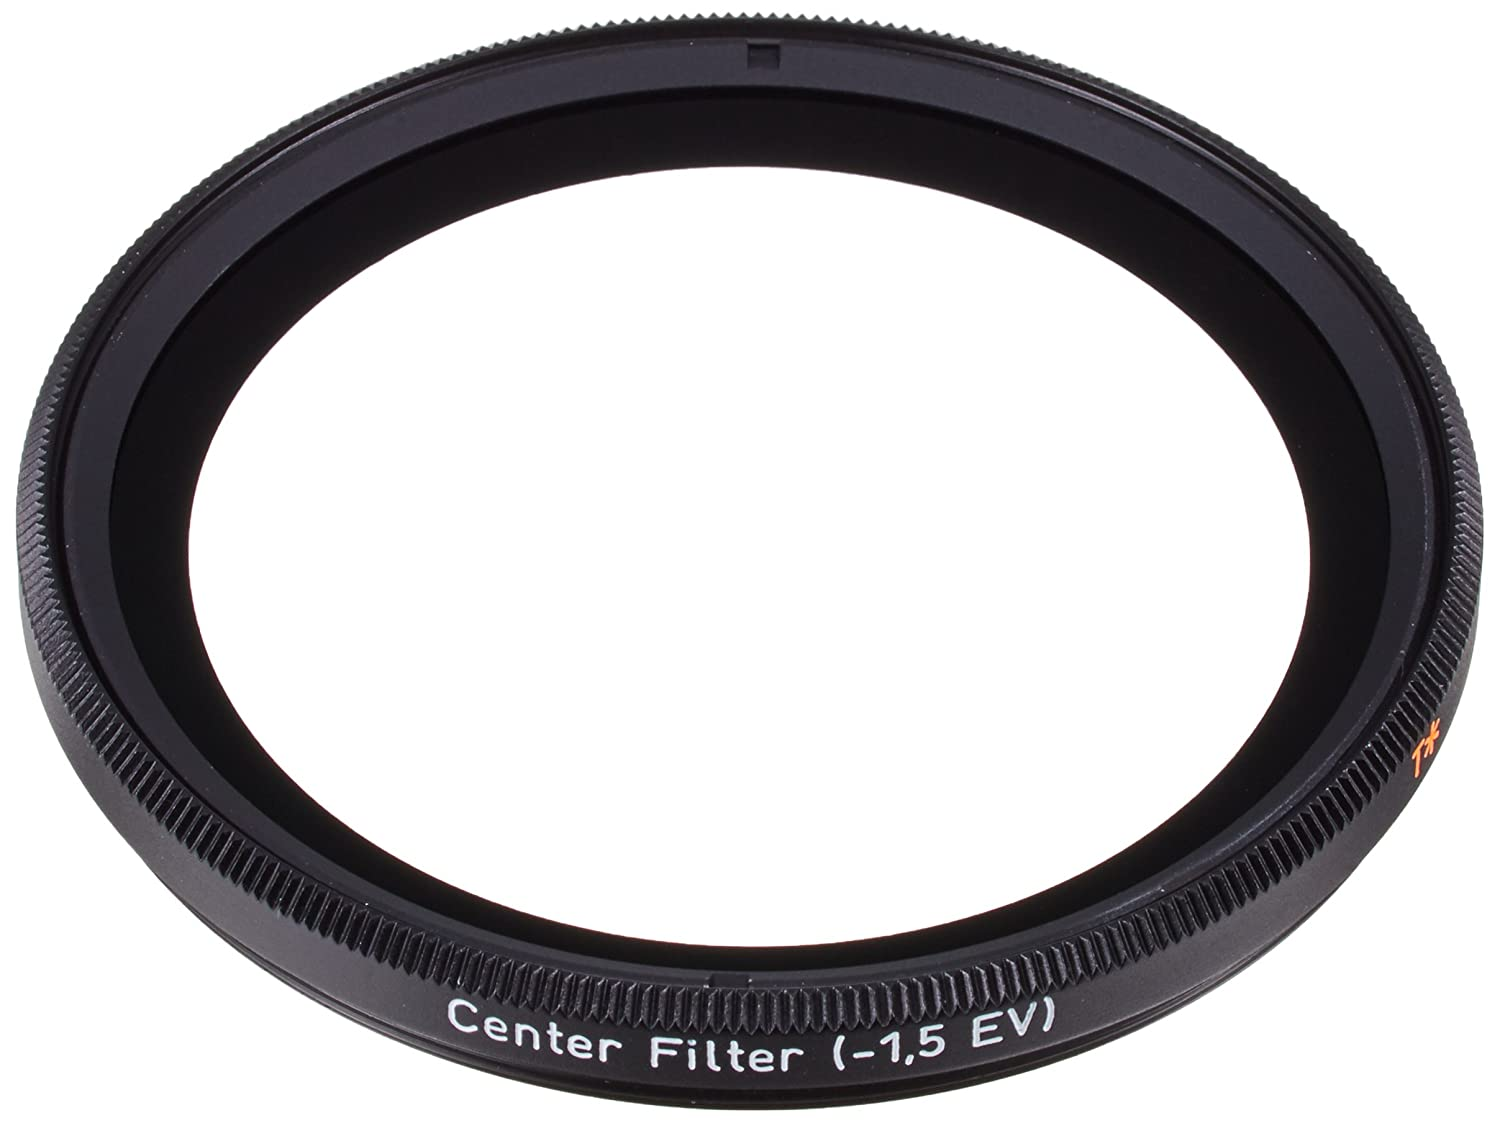 Carl Zeiss Zeiss Diatagon Carl 2.8 B00LVGFLE2/15mm用 センターNDフィルター 856158 B00LVGFLE2, カールシステムズ:91e51ee5 --- integralved.hu